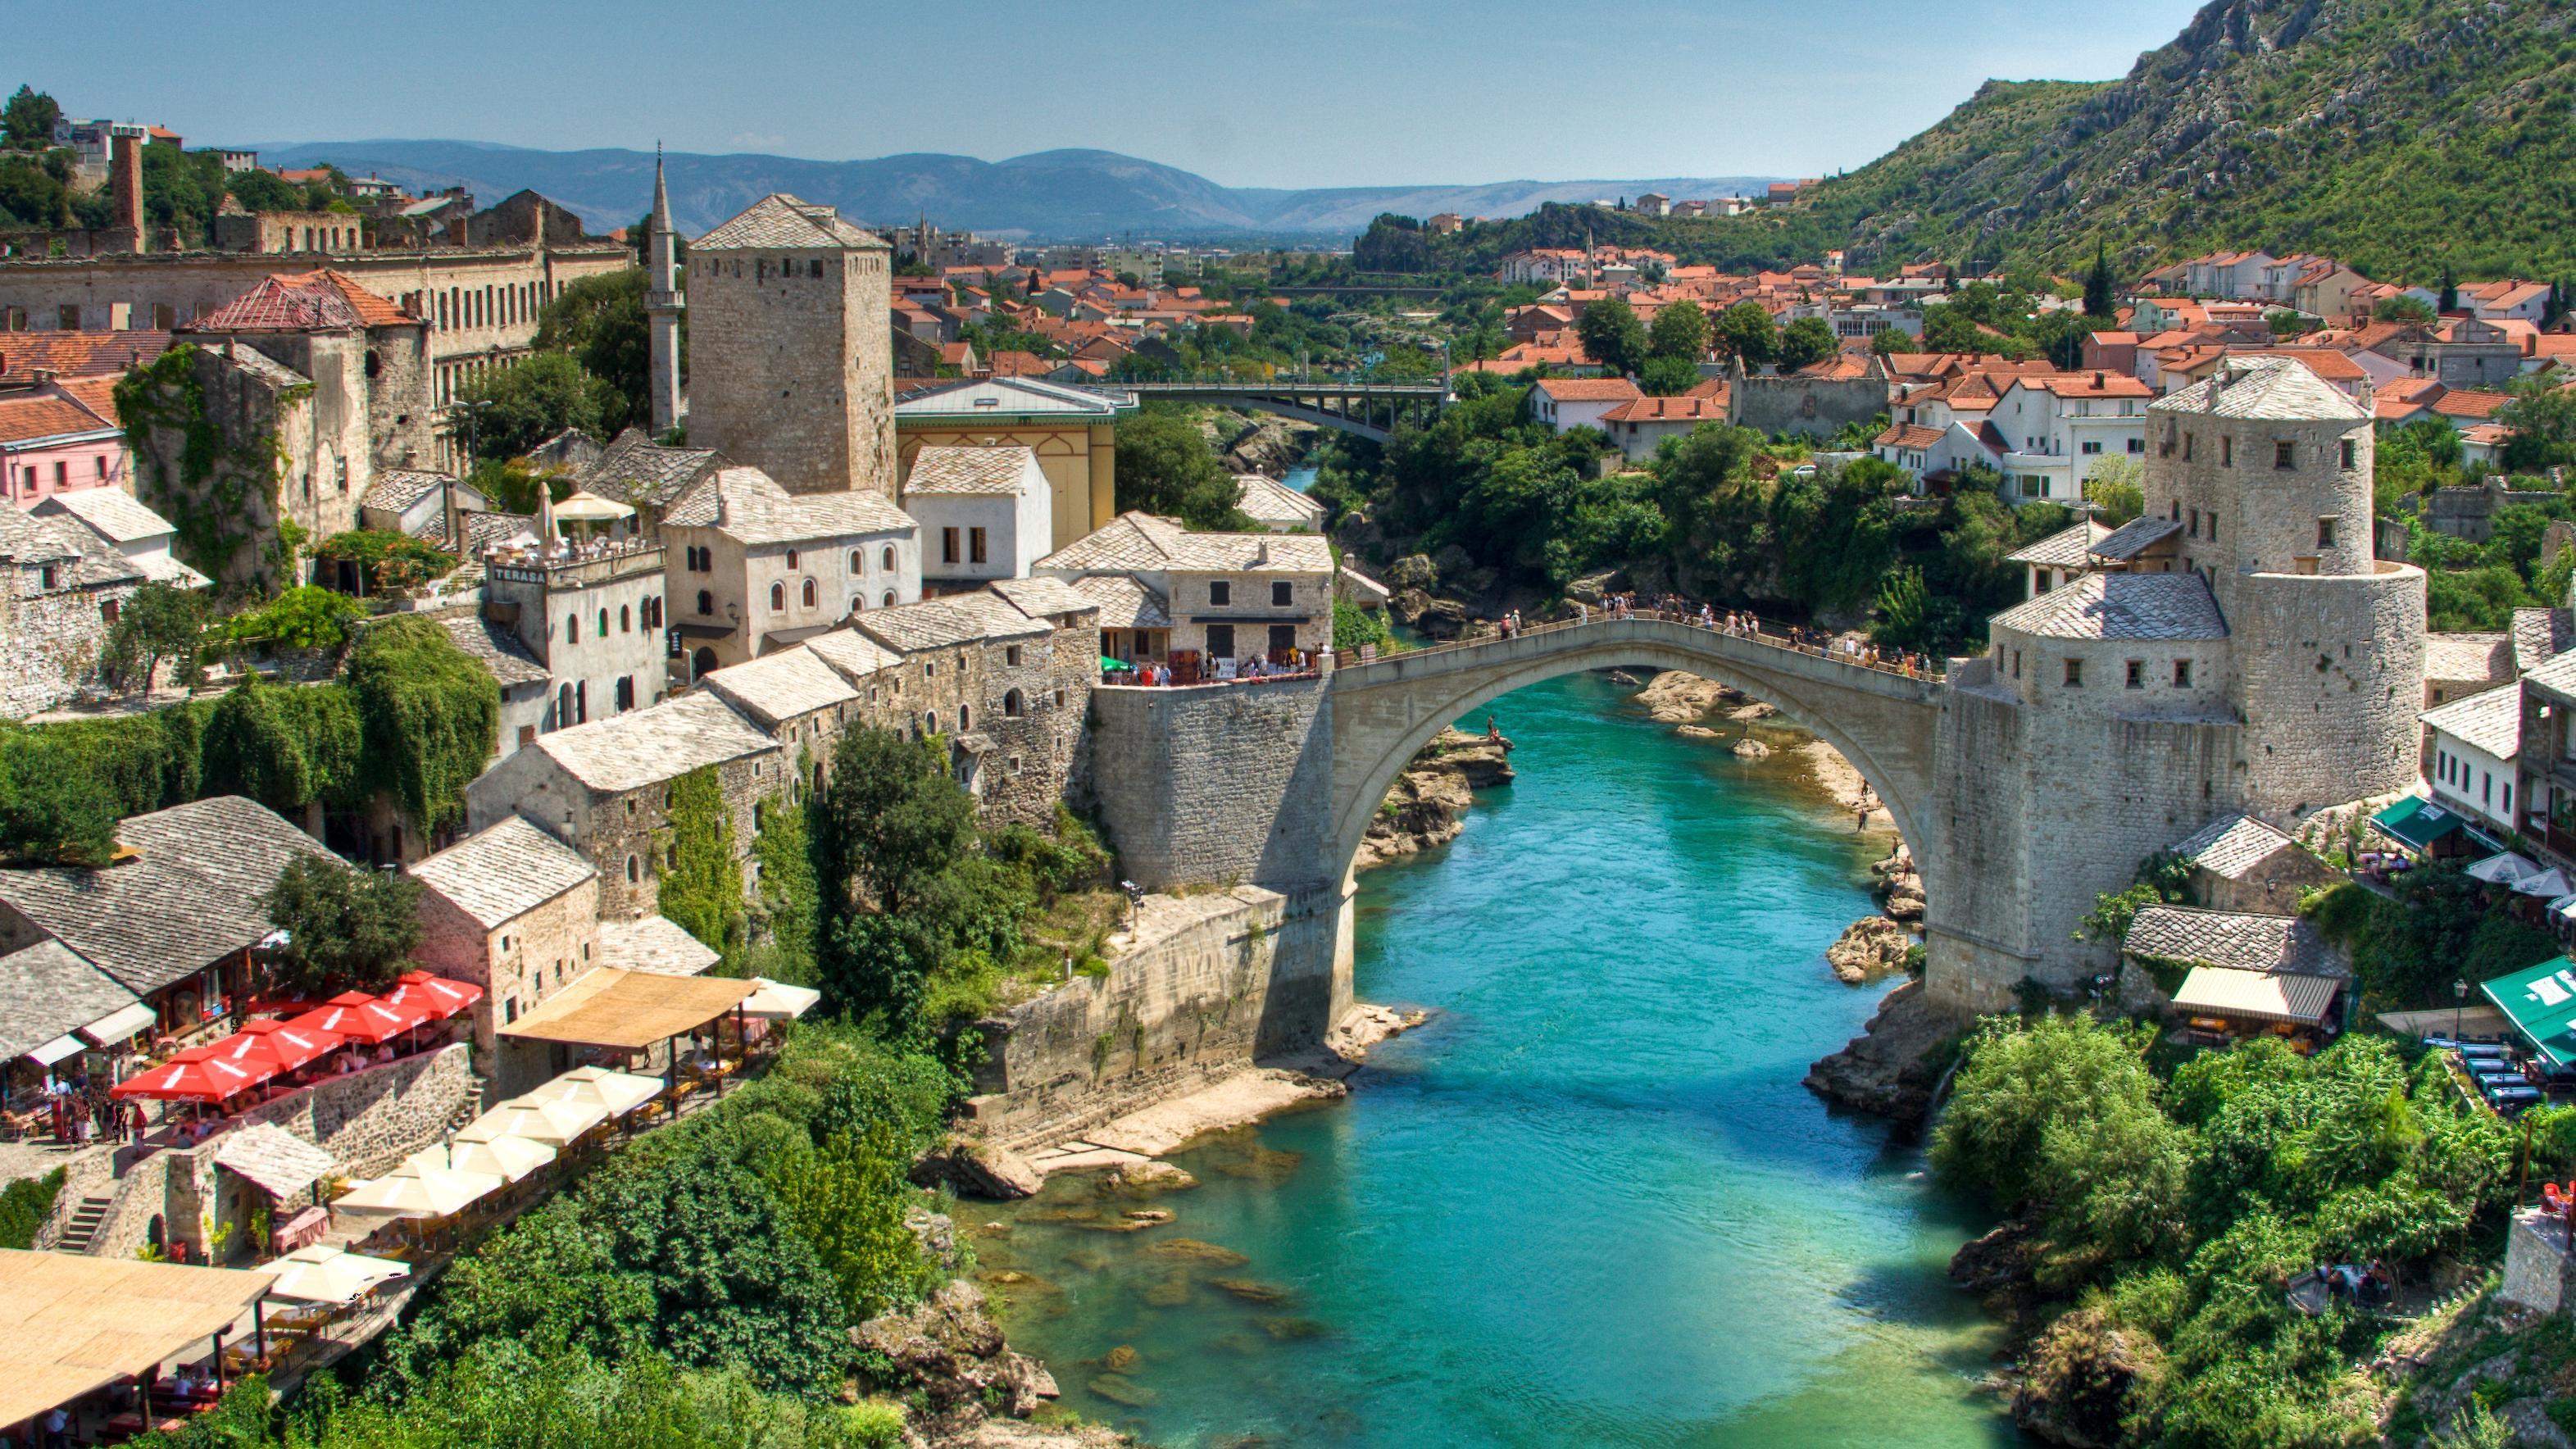 Hidden gems in Europe: 30 secret towns and cities to visit | Travel